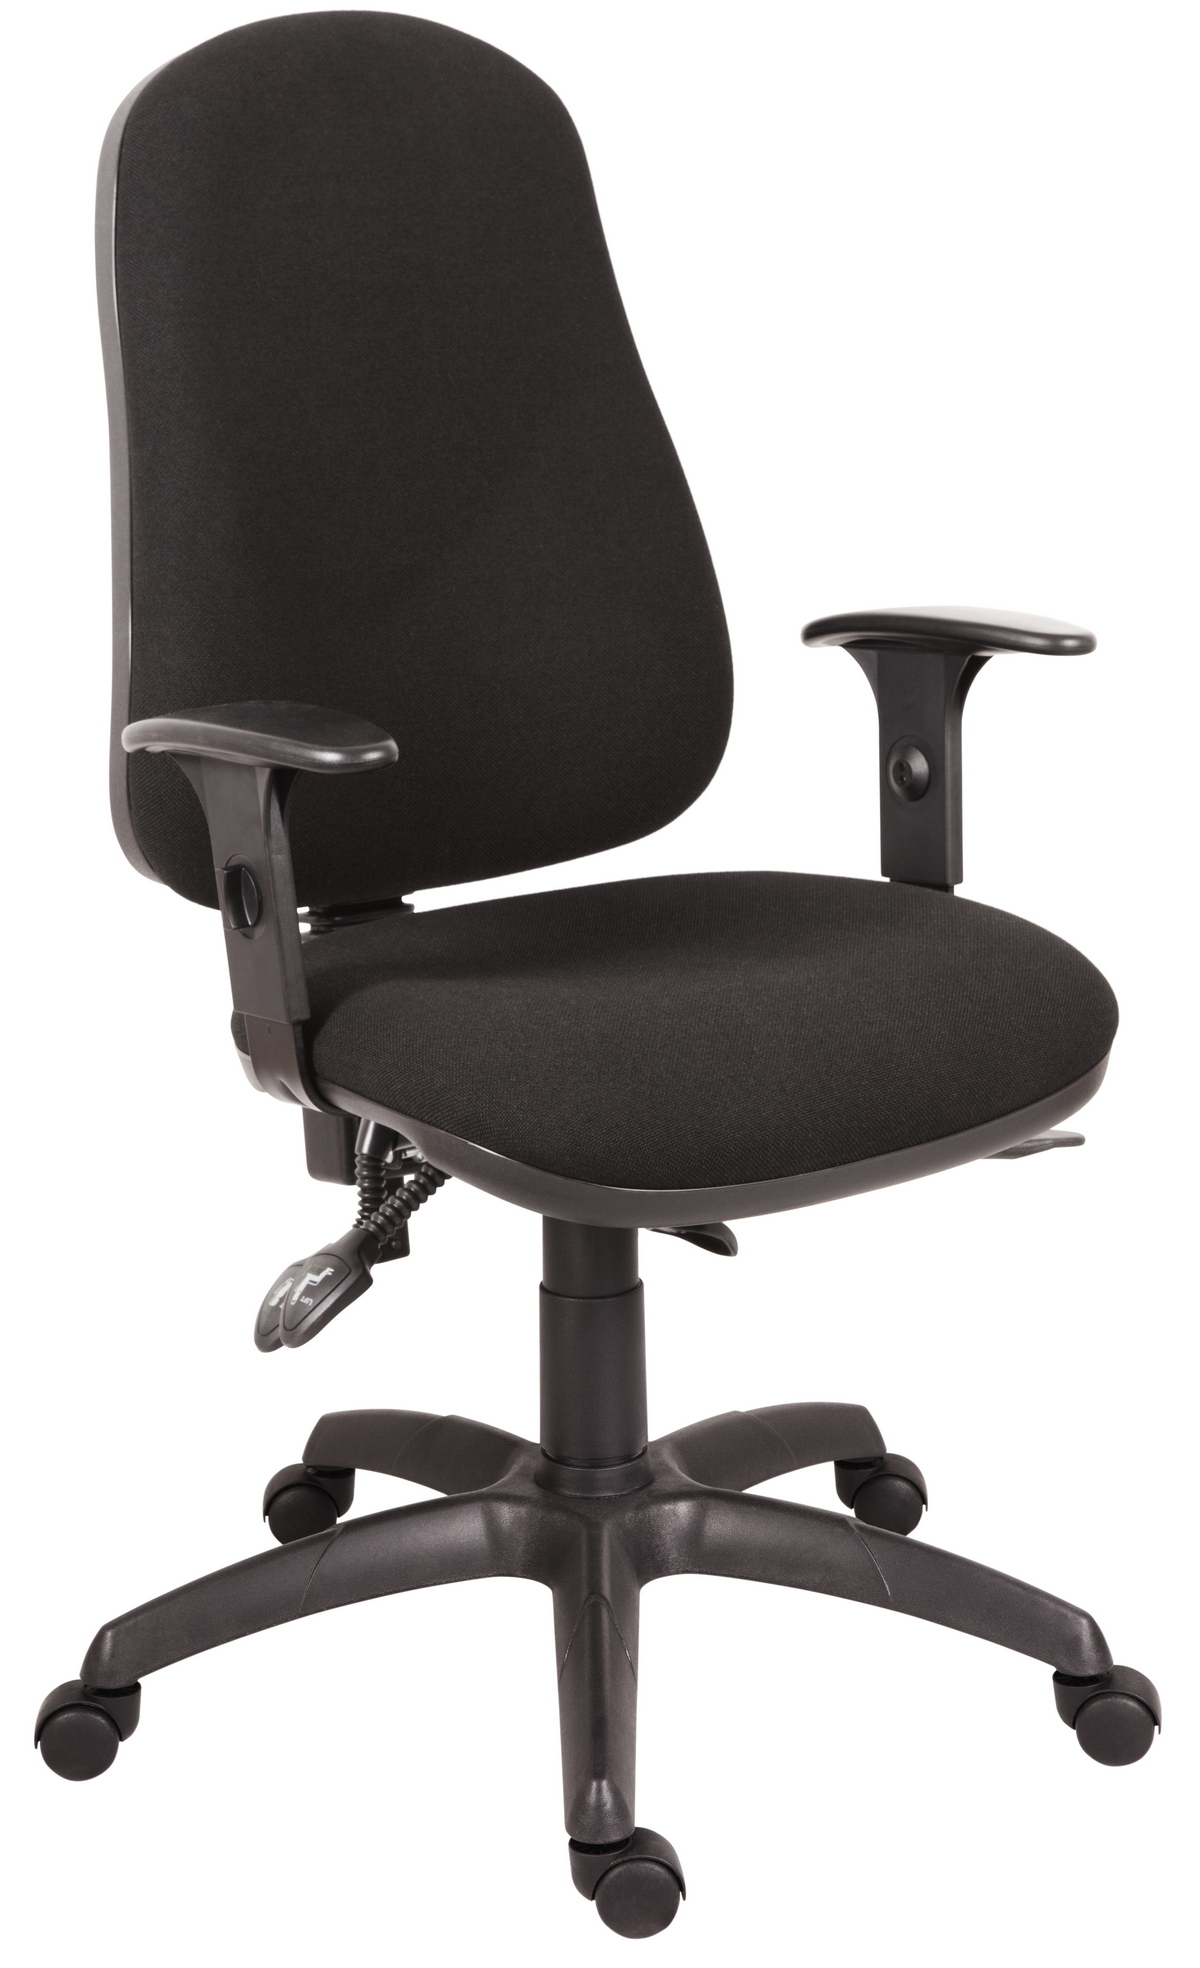 ergo chairs for office booster seat straps to chair